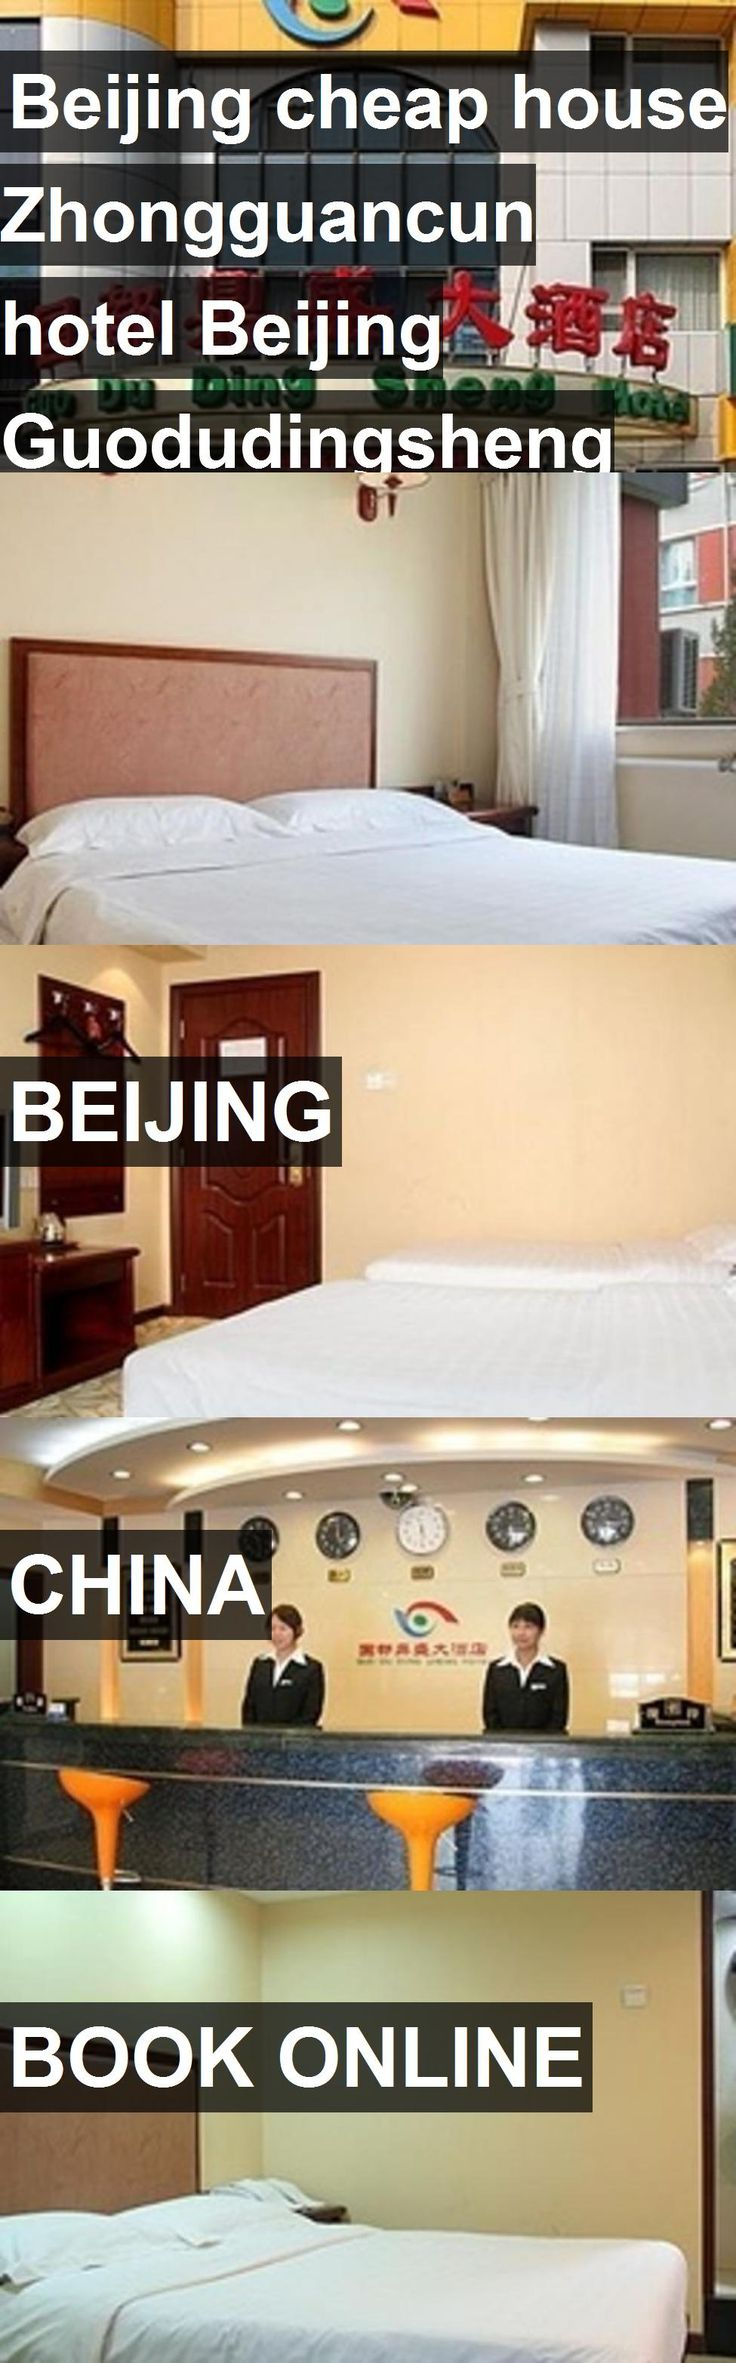 Beijing cheap house Zhongguancun hotel Beijing Guodudingsheng Hotel in Beijing, China. For more information, photos, reviews and best prices please follow the link. #China #Beijing #travel #vacation #hotel